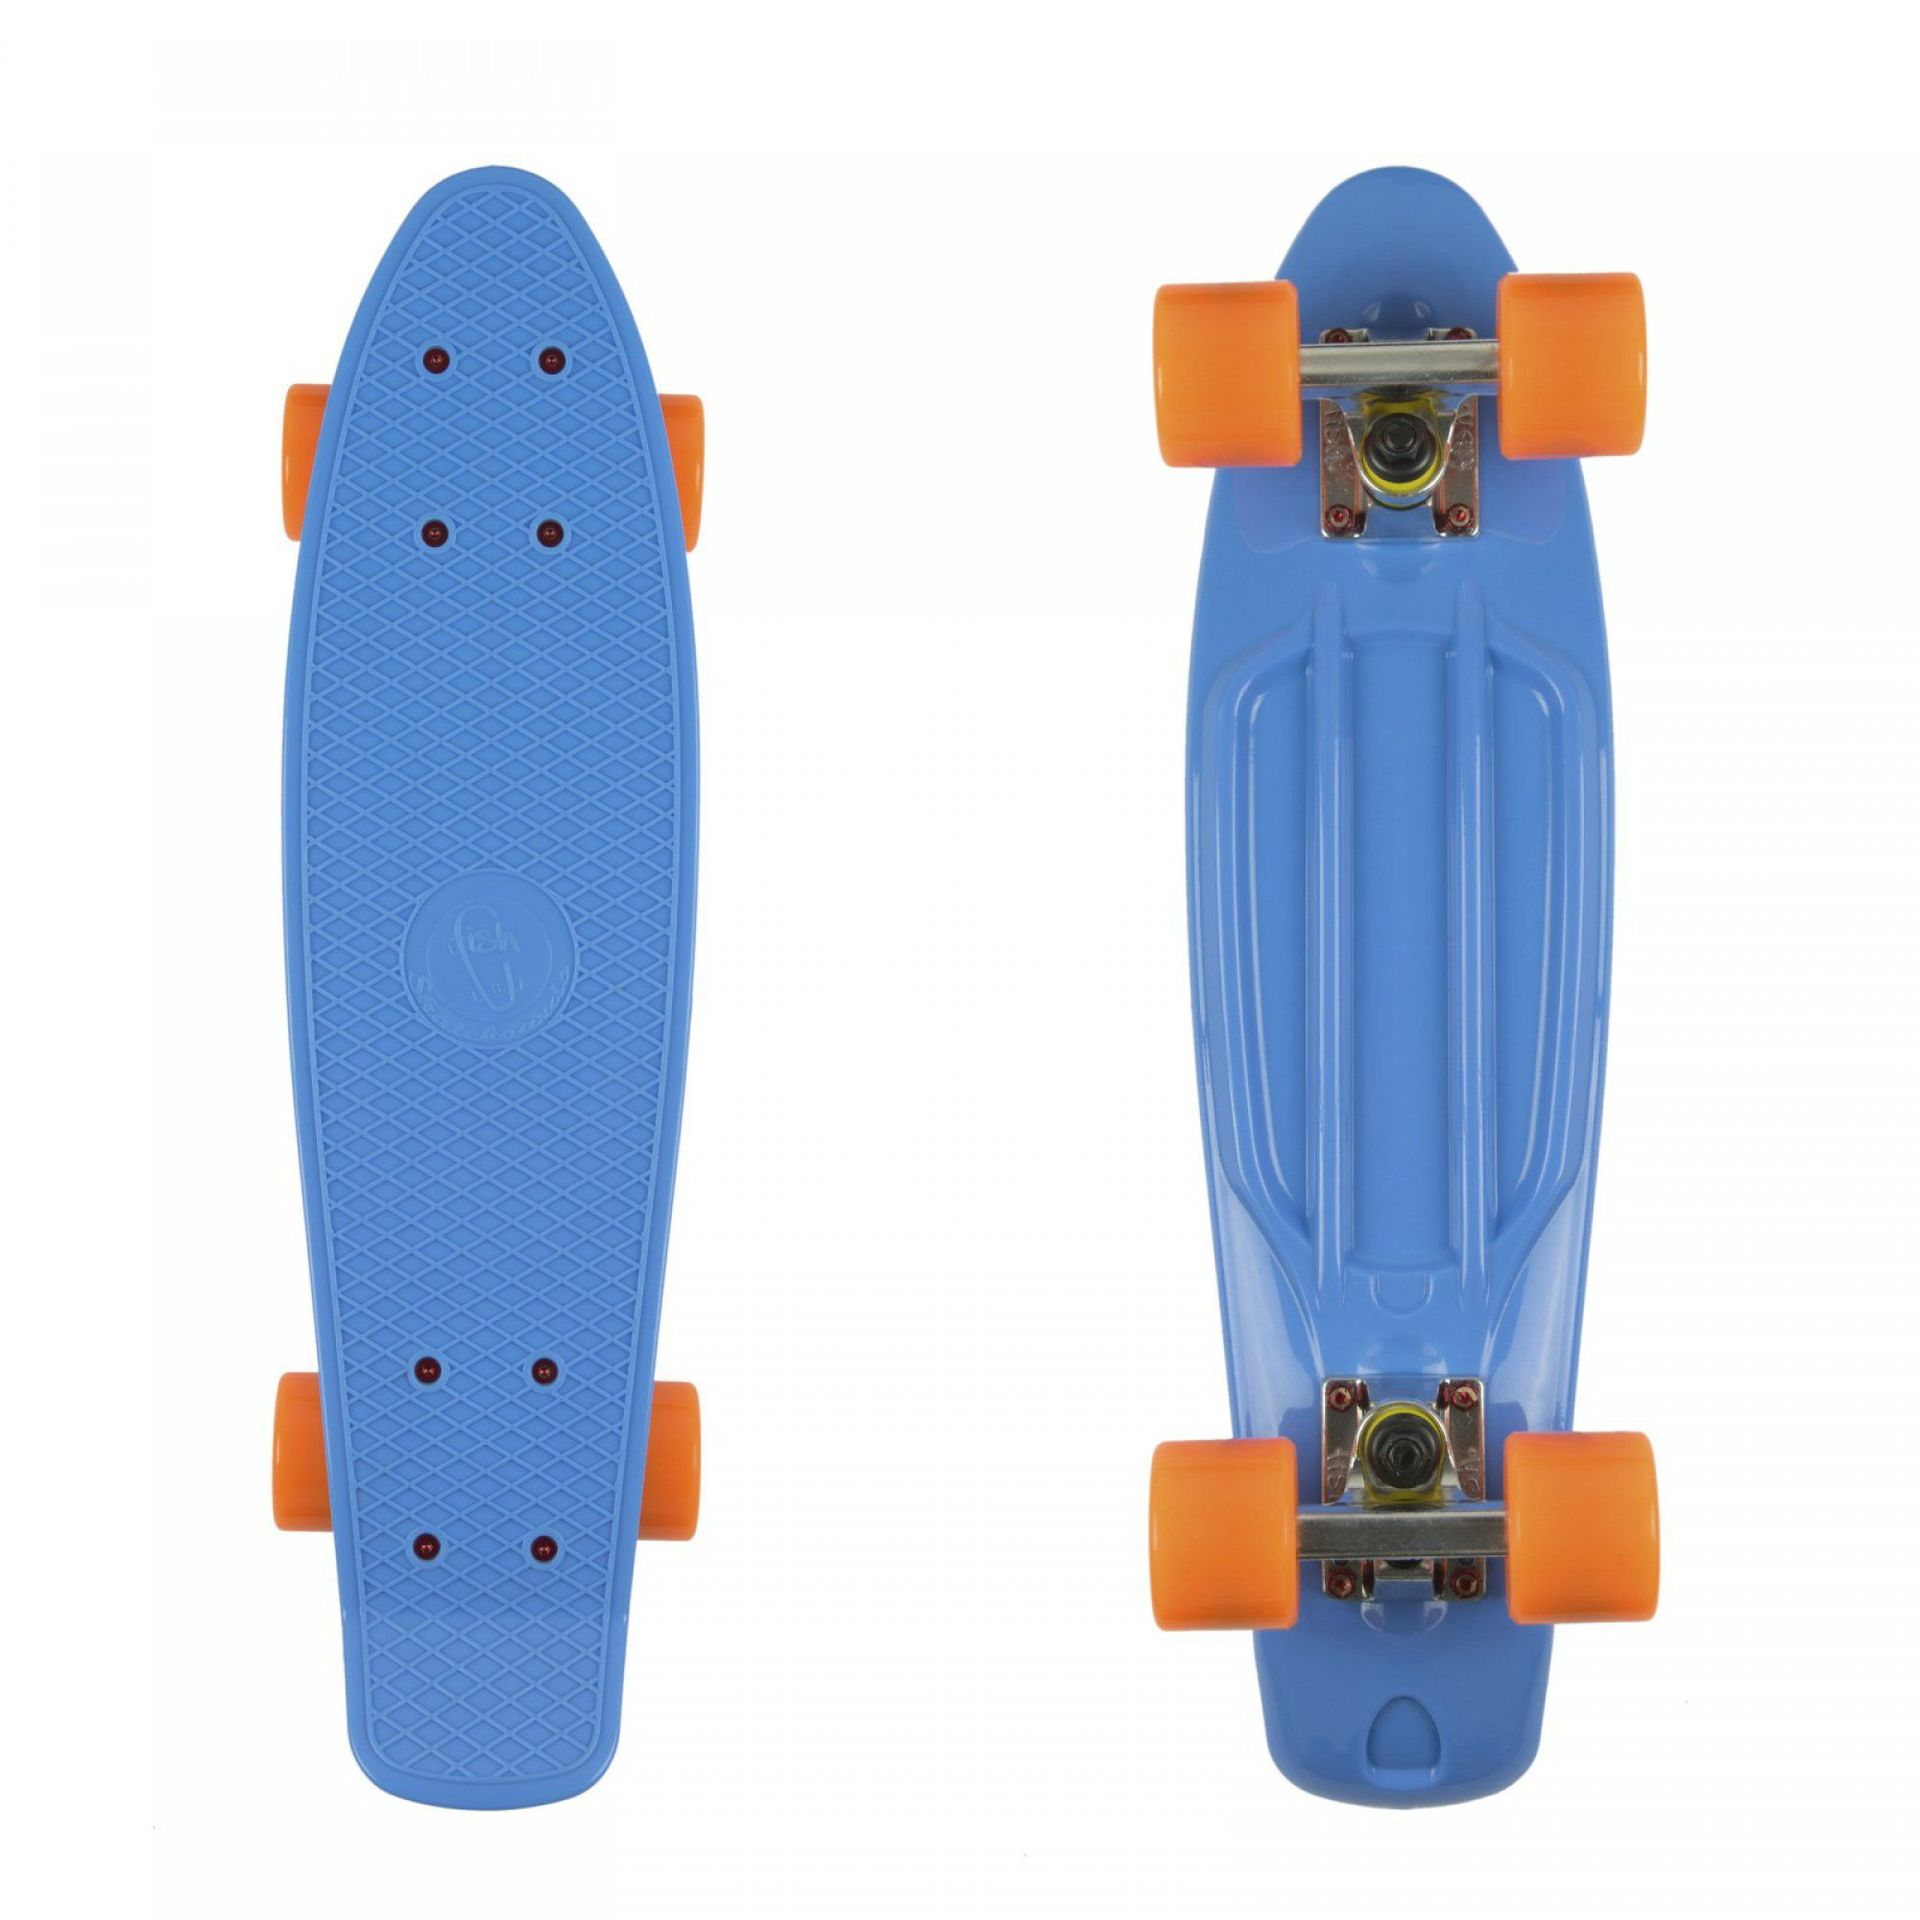 FISHBOARD FISH SKATEBOARDS BLUE|SILVER|ORANGE